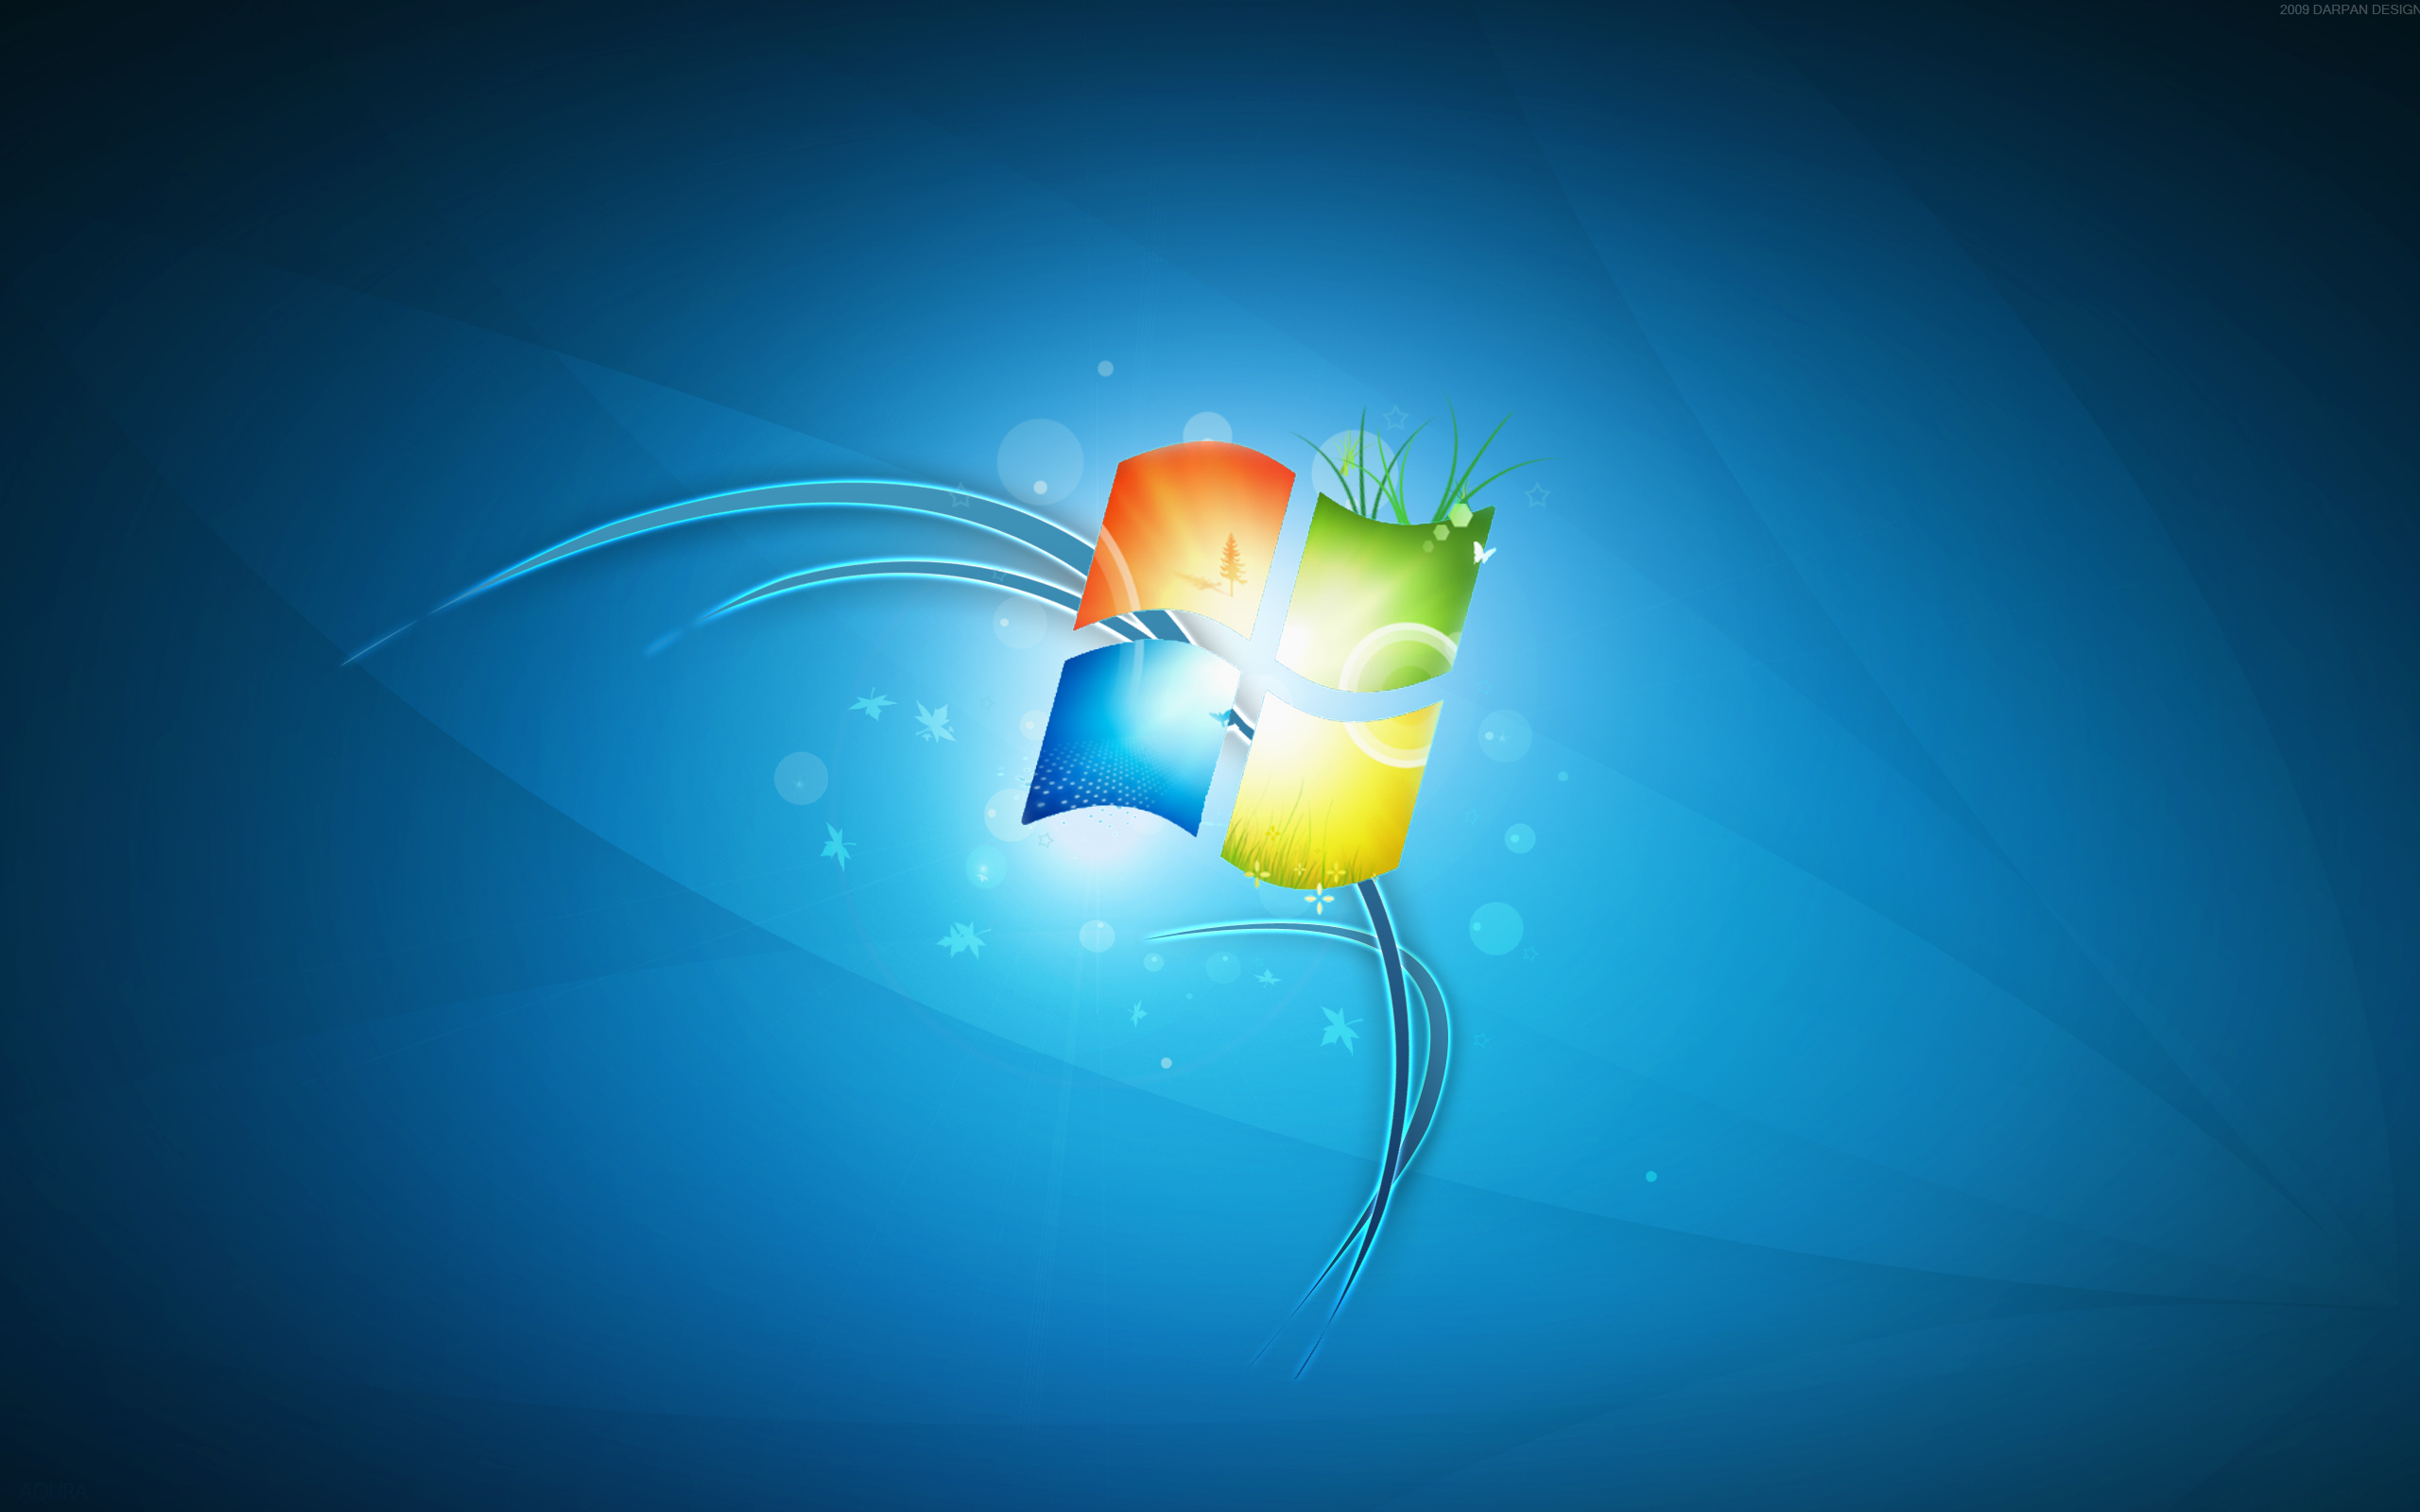 microsoft desktop backgrounds wallpapers9